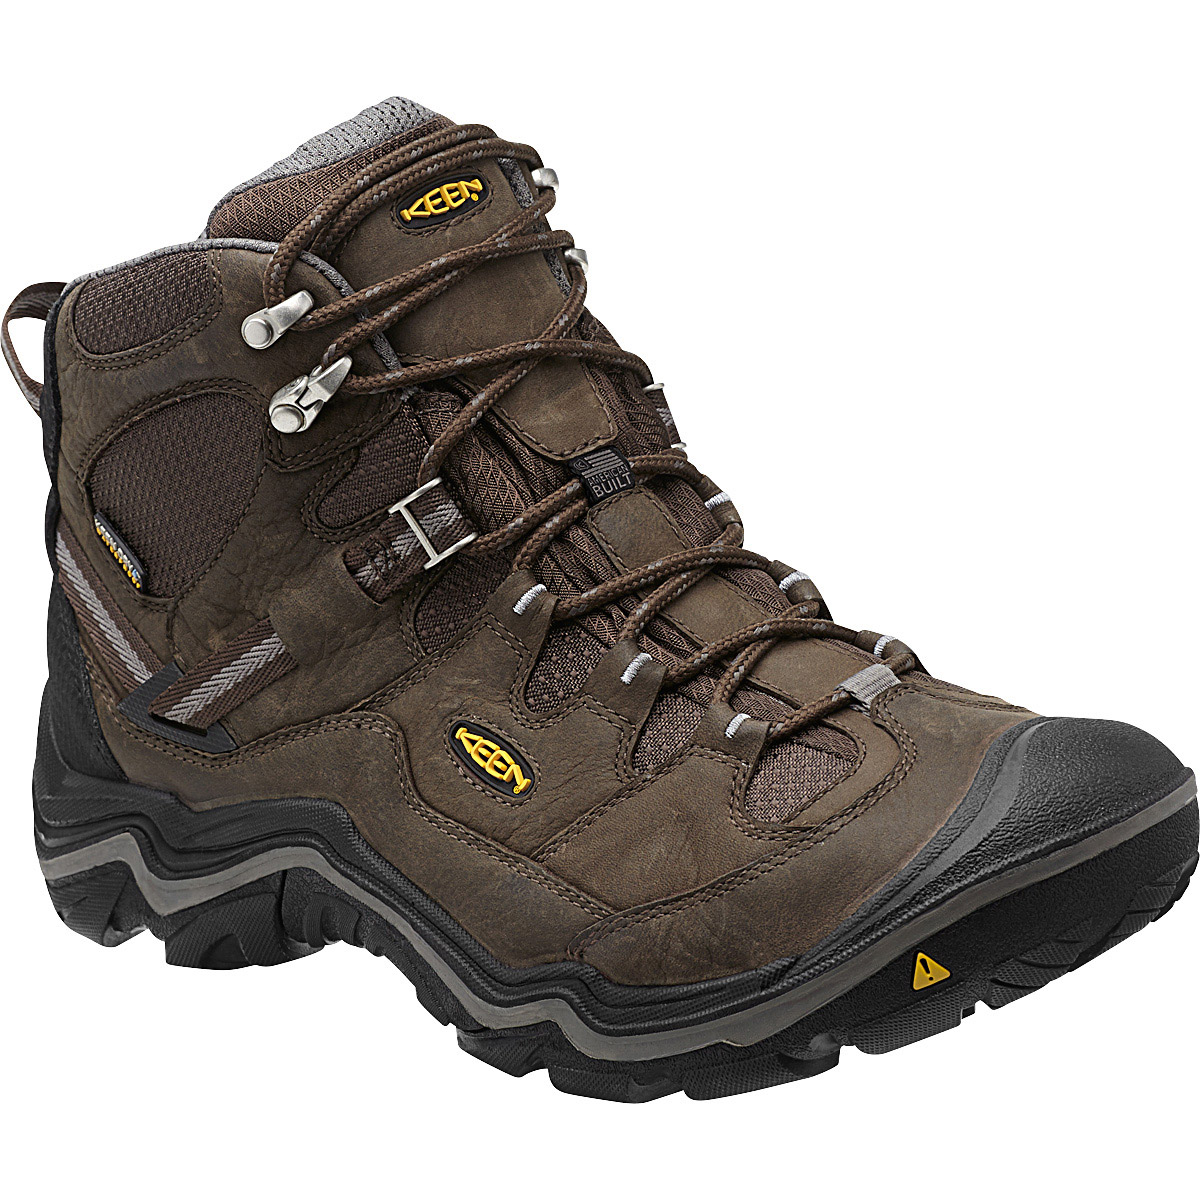 Keen Men's Durand Mid Wp Hiking Boots - Brown, 8.5